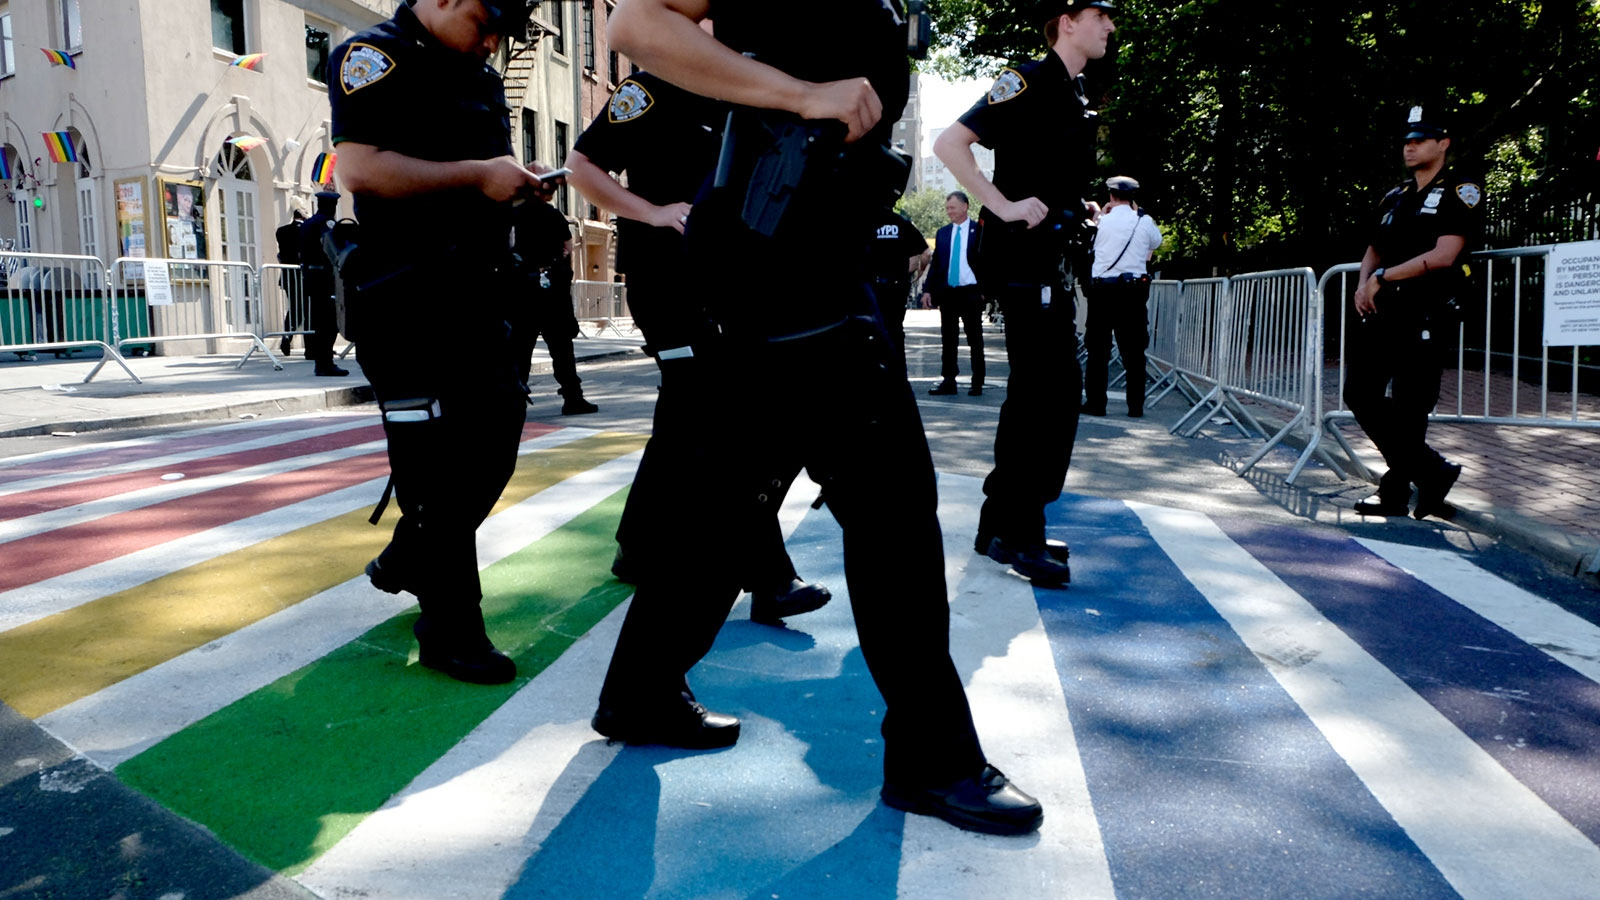 NYPD Officers wearing Blue walk over a rainbow painted crosswalk on Christopher Street and Seventh Ave near the Stonewall Inn early Friday morning the day marking the Fifty Anniversary of the Stonewall Riots.